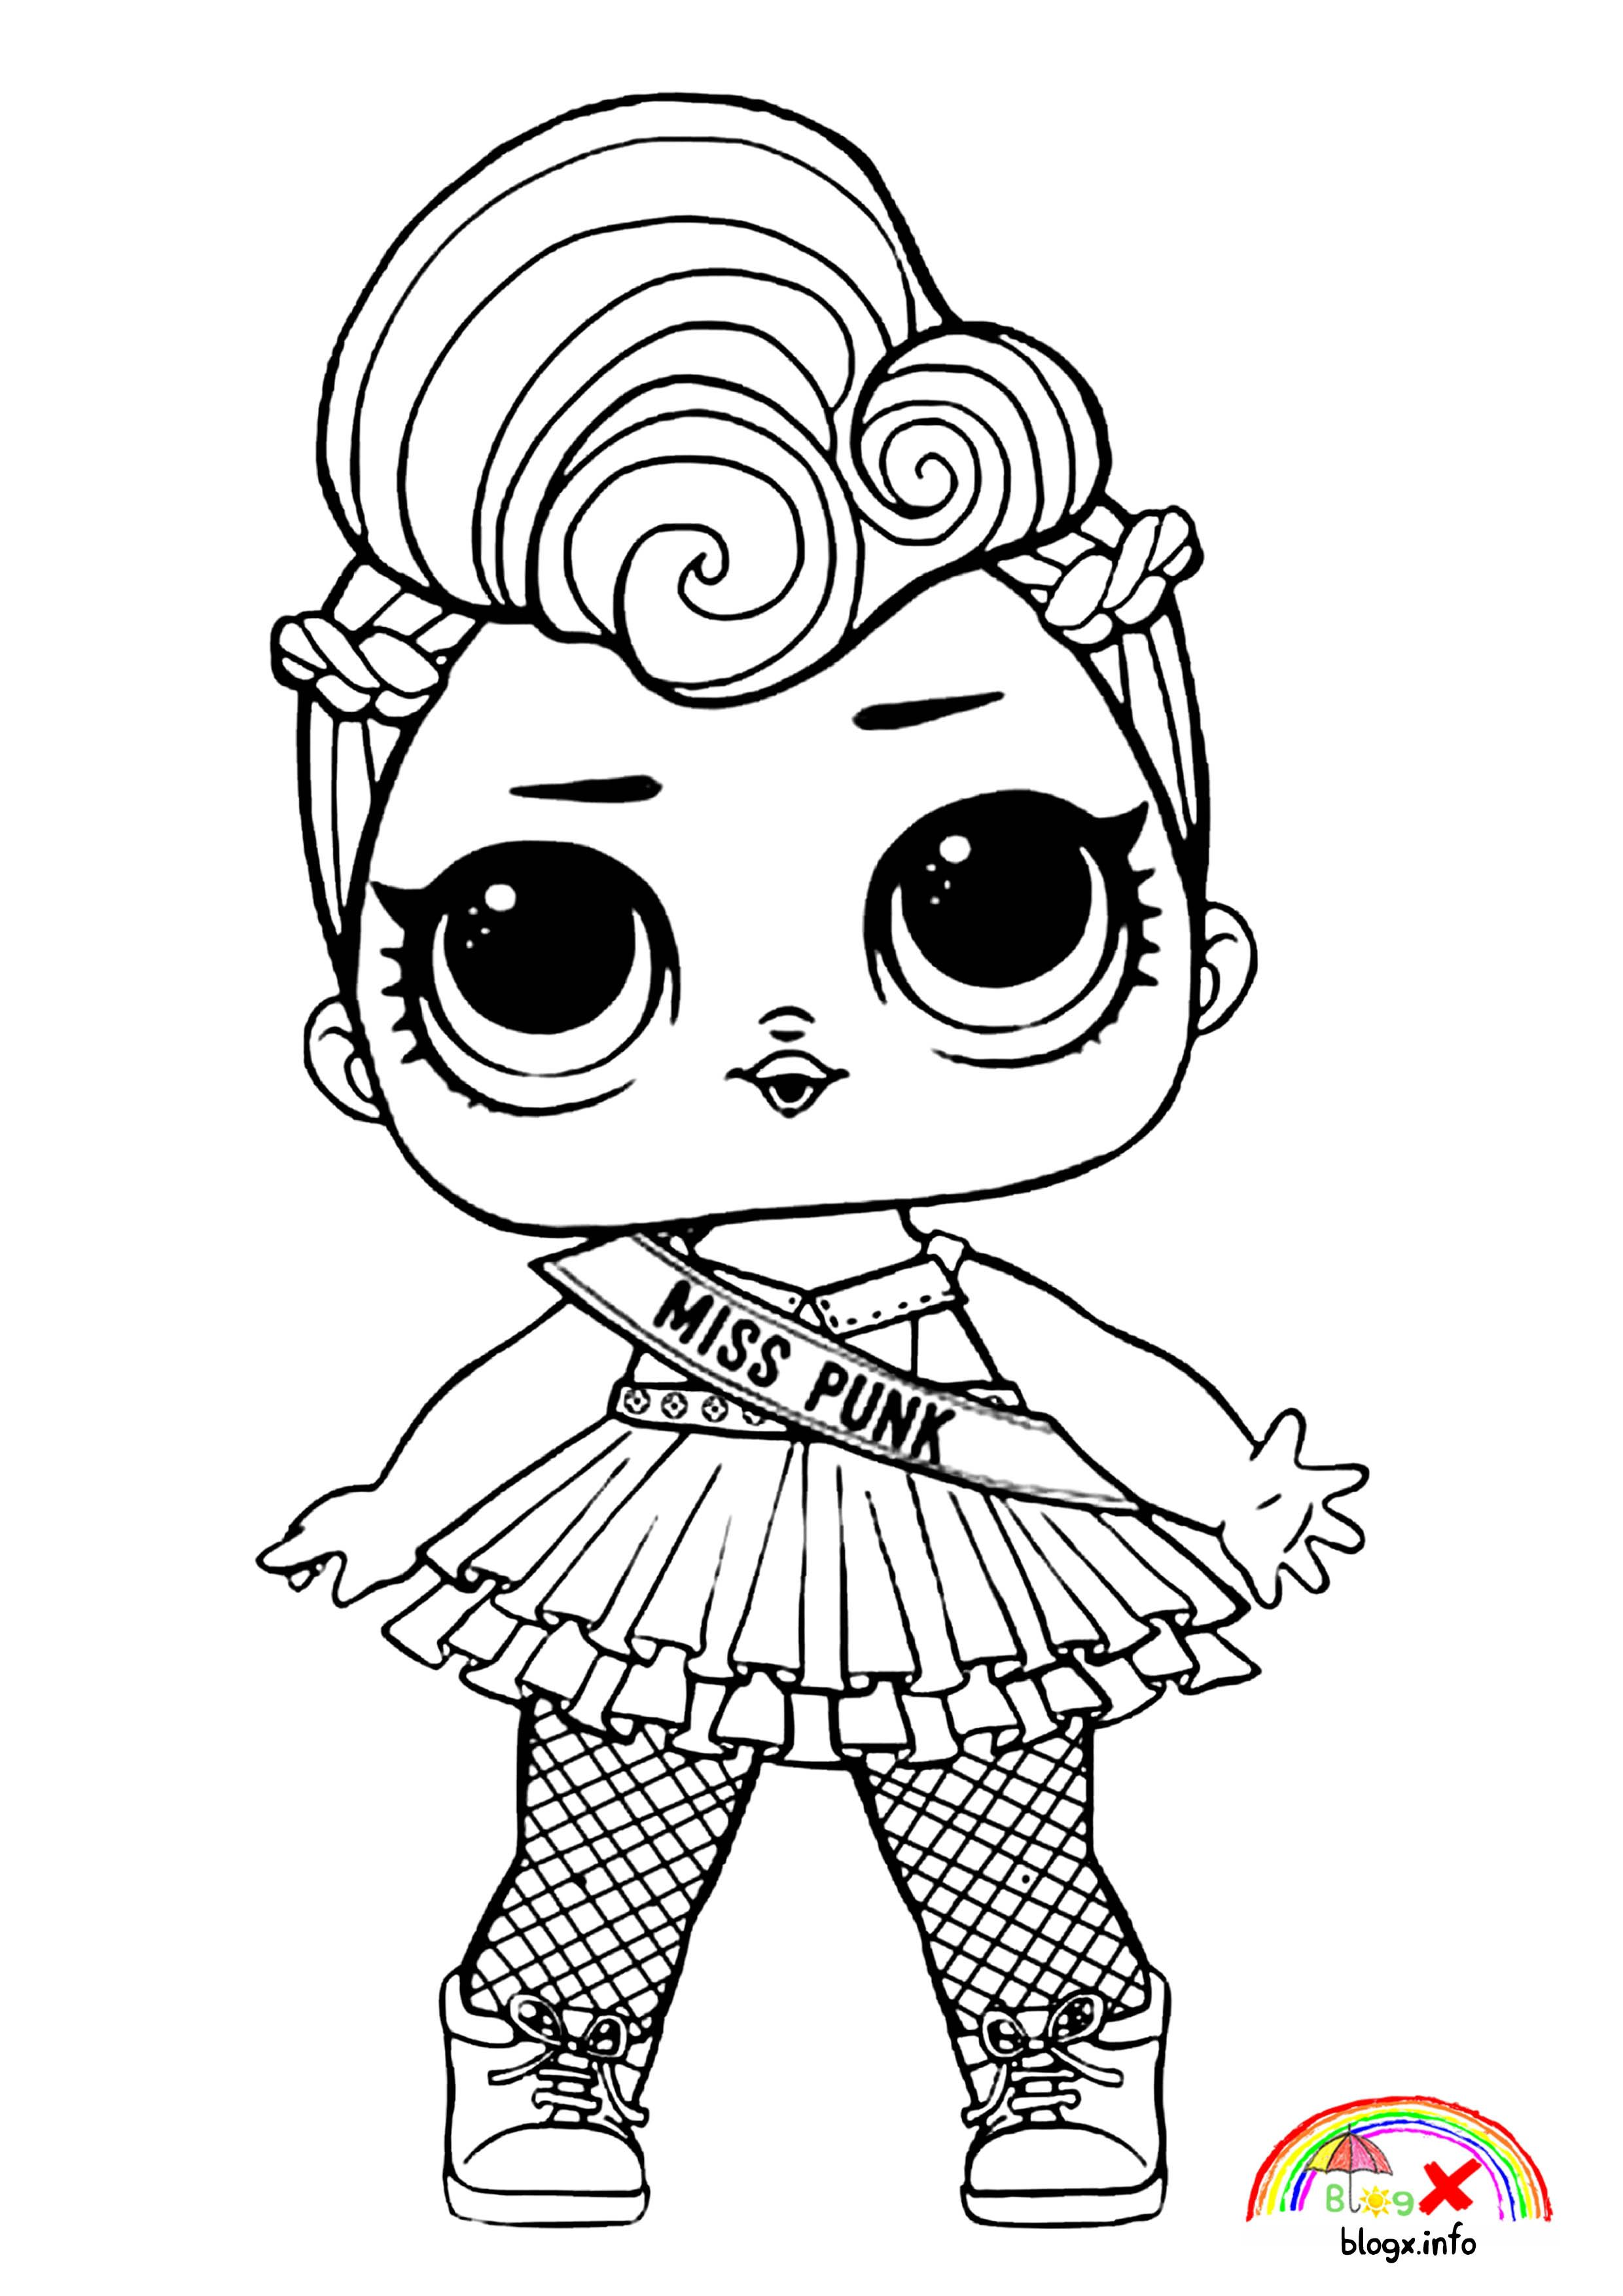 lol toy coloring pages lol doll coloring pages amazon ball shaped toys with toy pages lol coloring